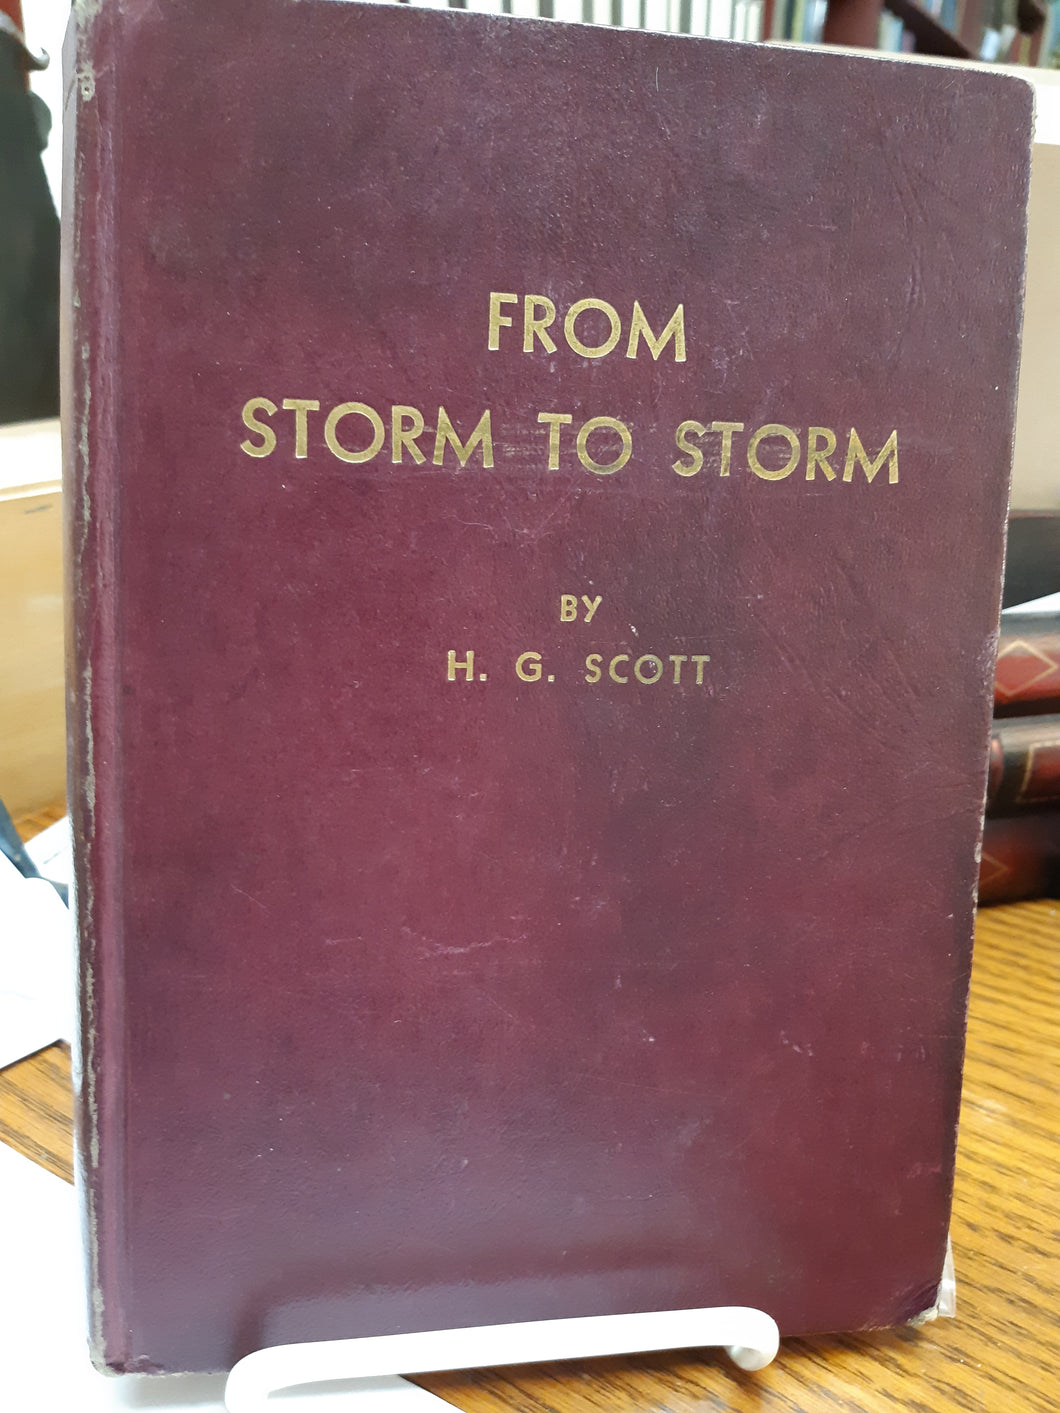 From Storm to Storm by H. G. Scott